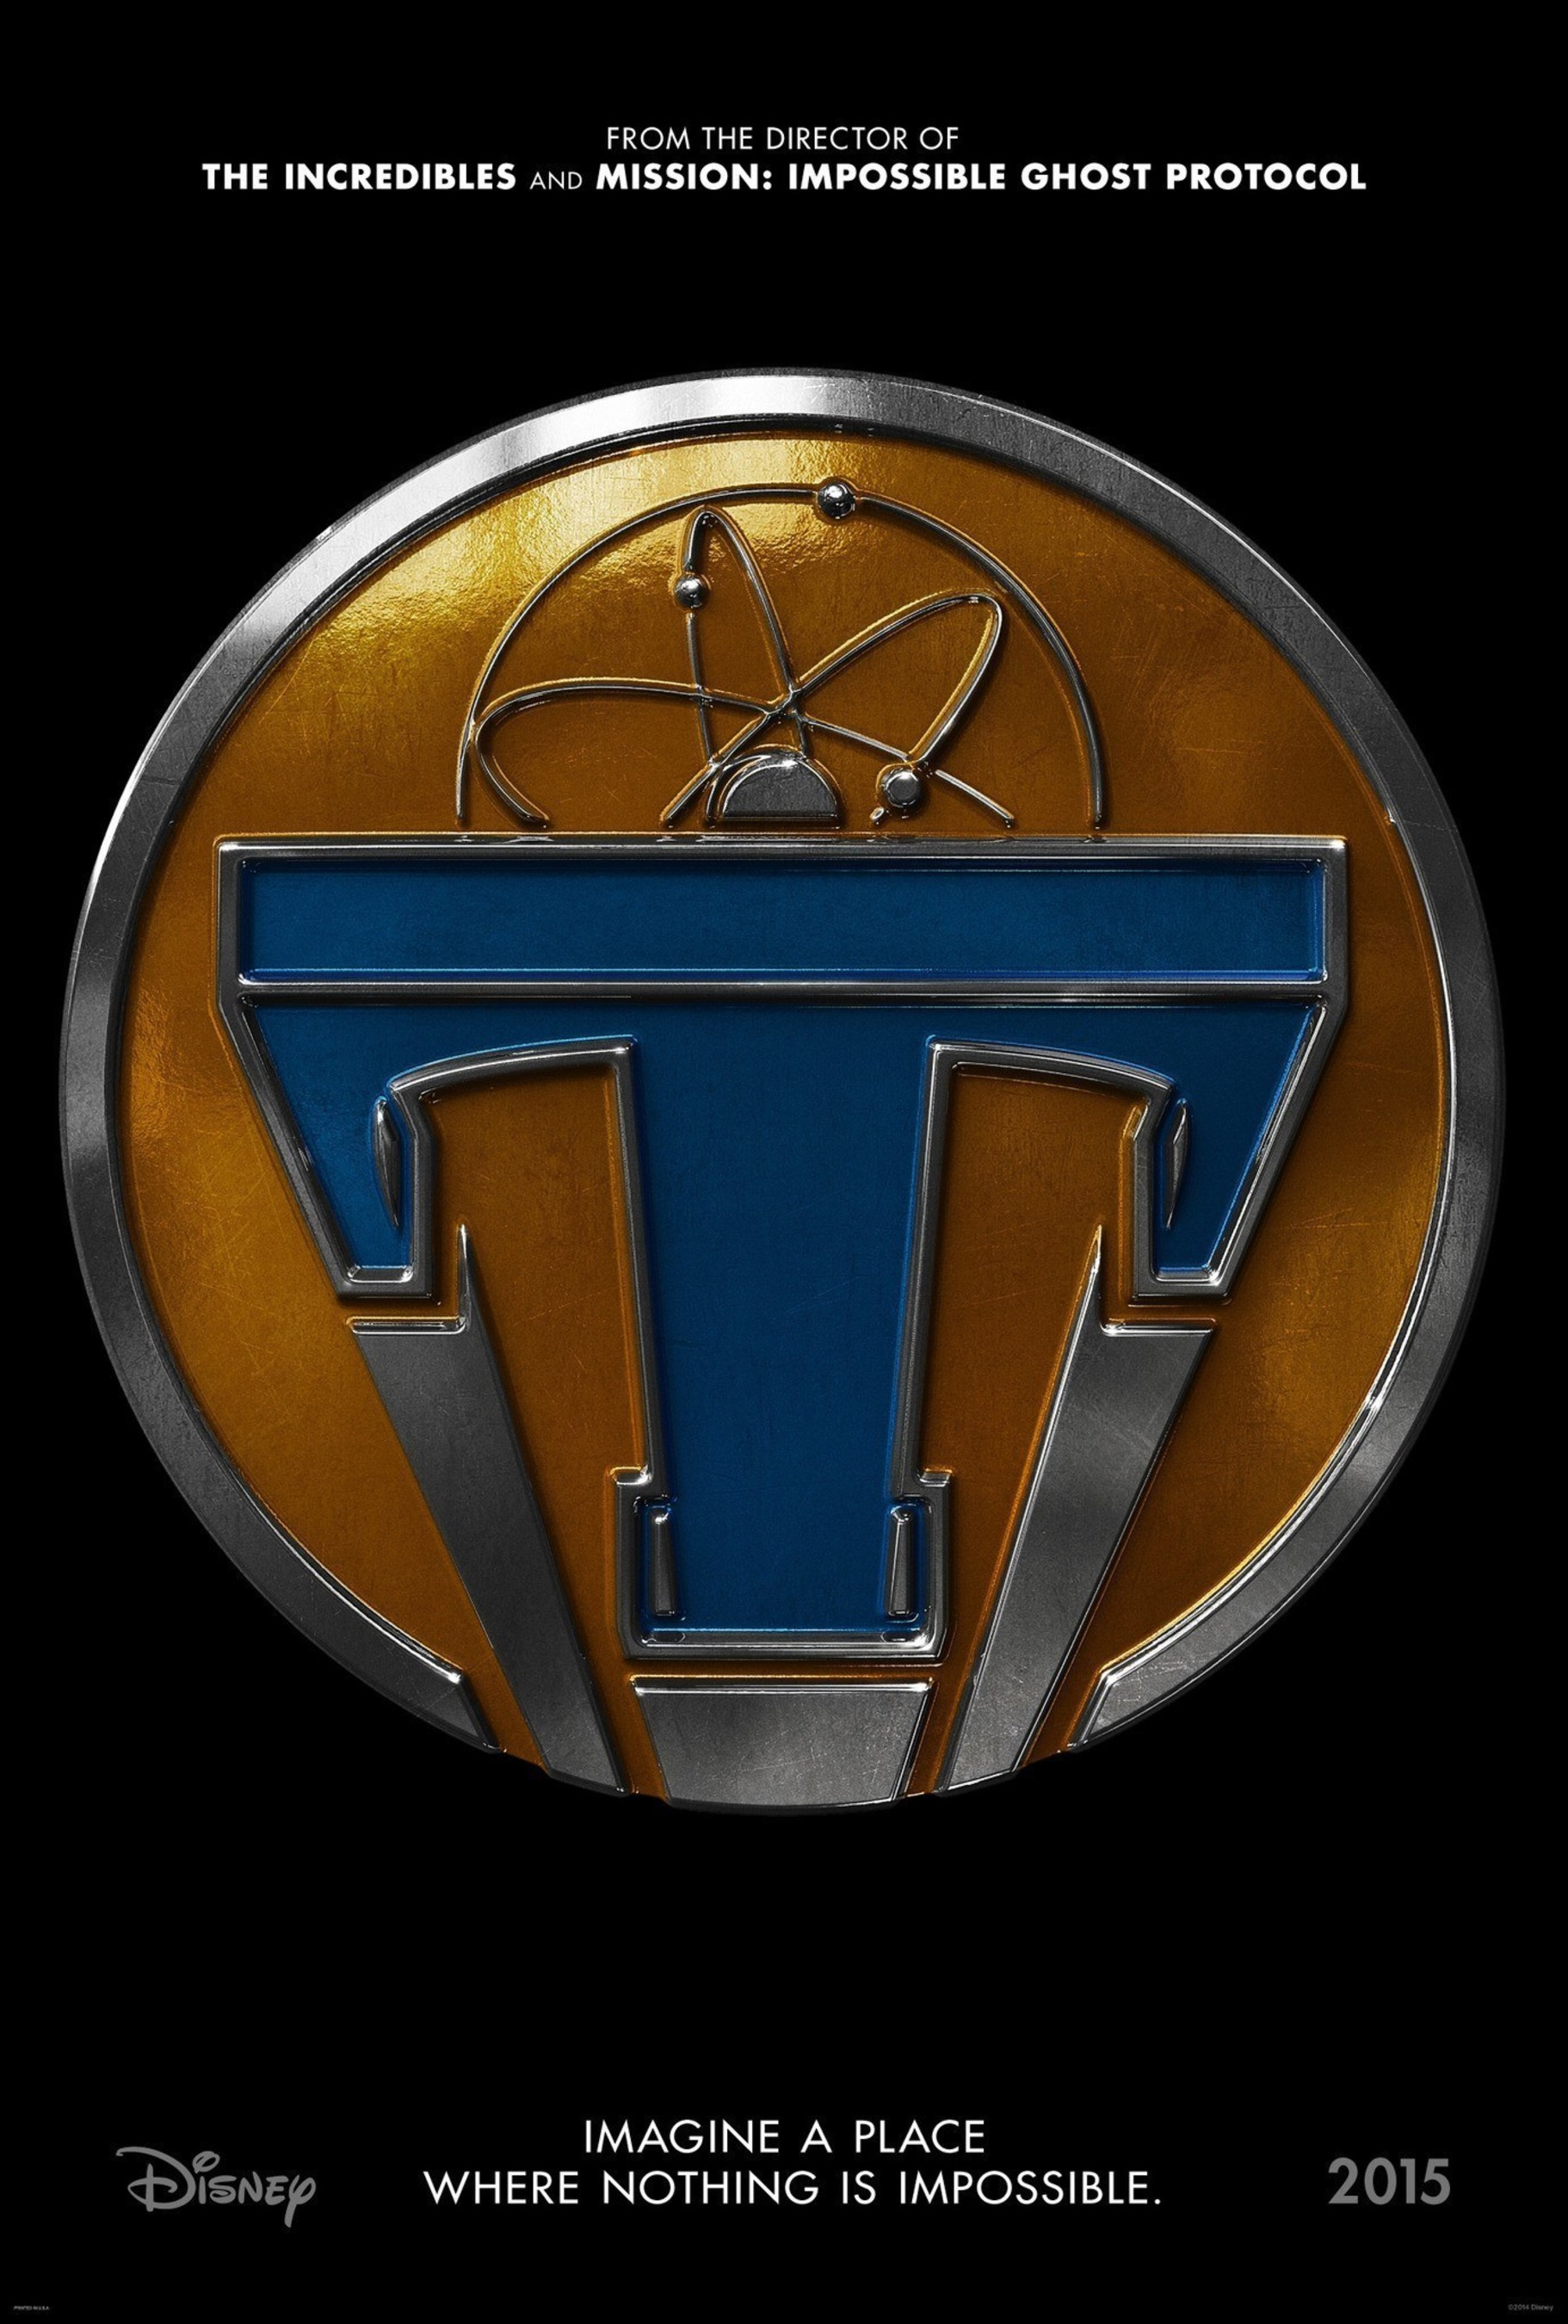 Regal Entertainment Group Announces Limited Edition Pin Giveaway To Celebrate the Opening of 'Tomorrowland'